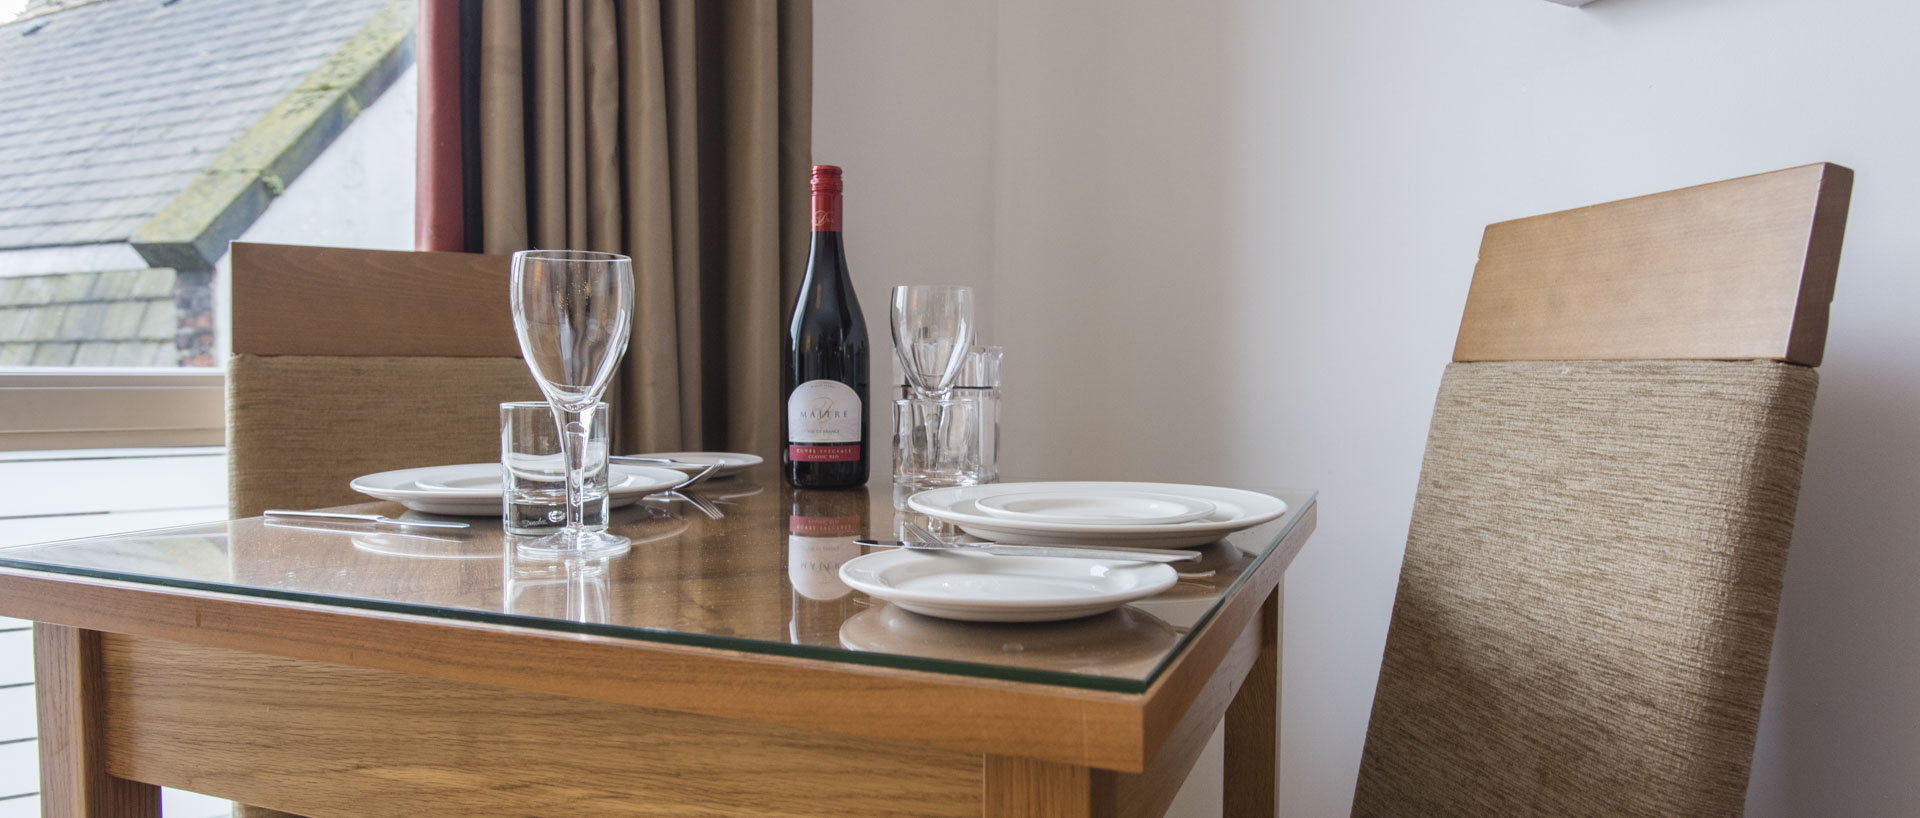 Dining table at PREMIER SUITES Liverpool serviced apartment